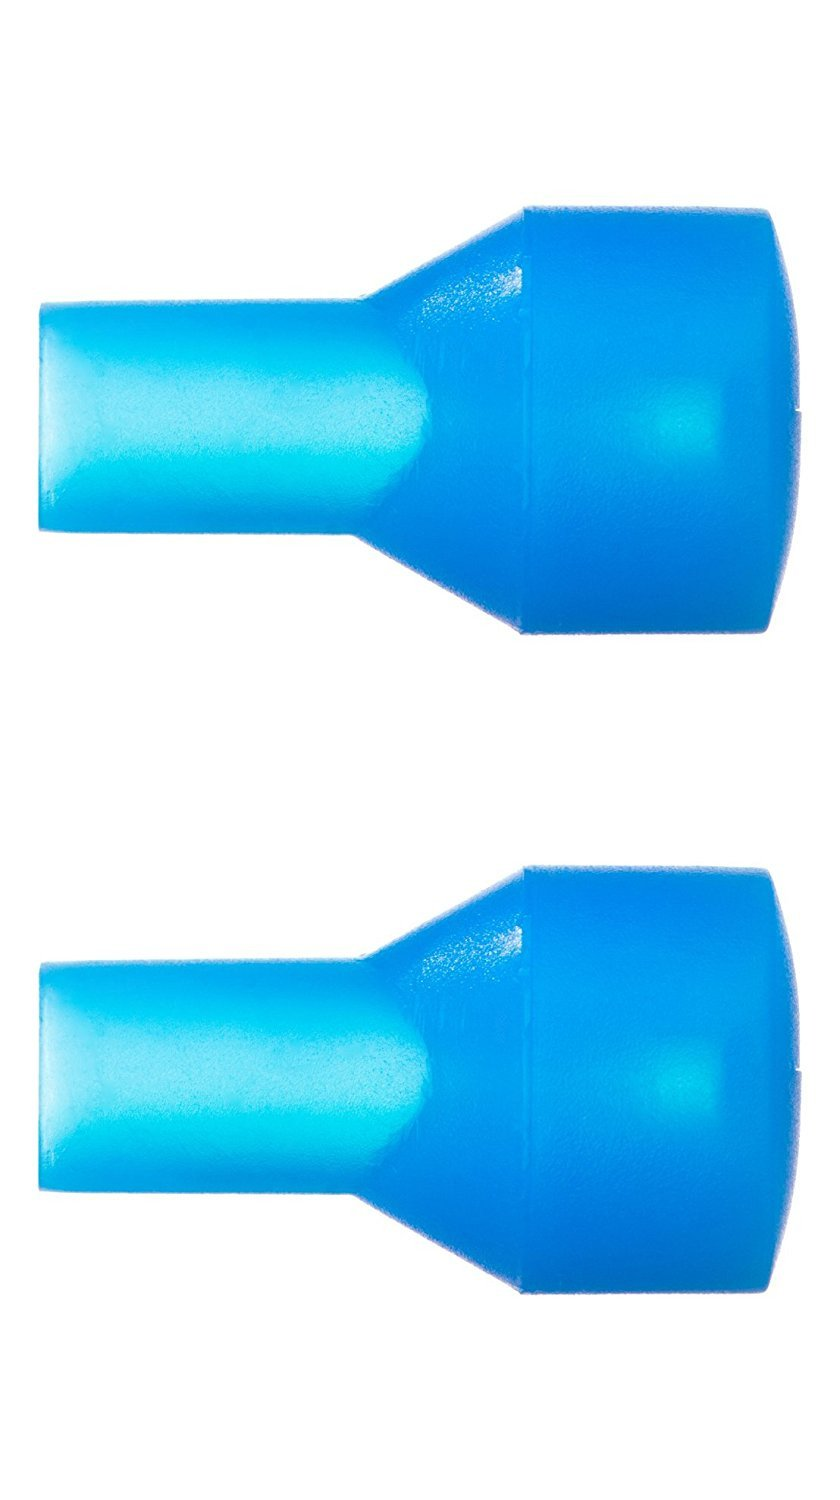 CamelBak Big Bite Valve blue( Per Piece) - Backpackers Gallery